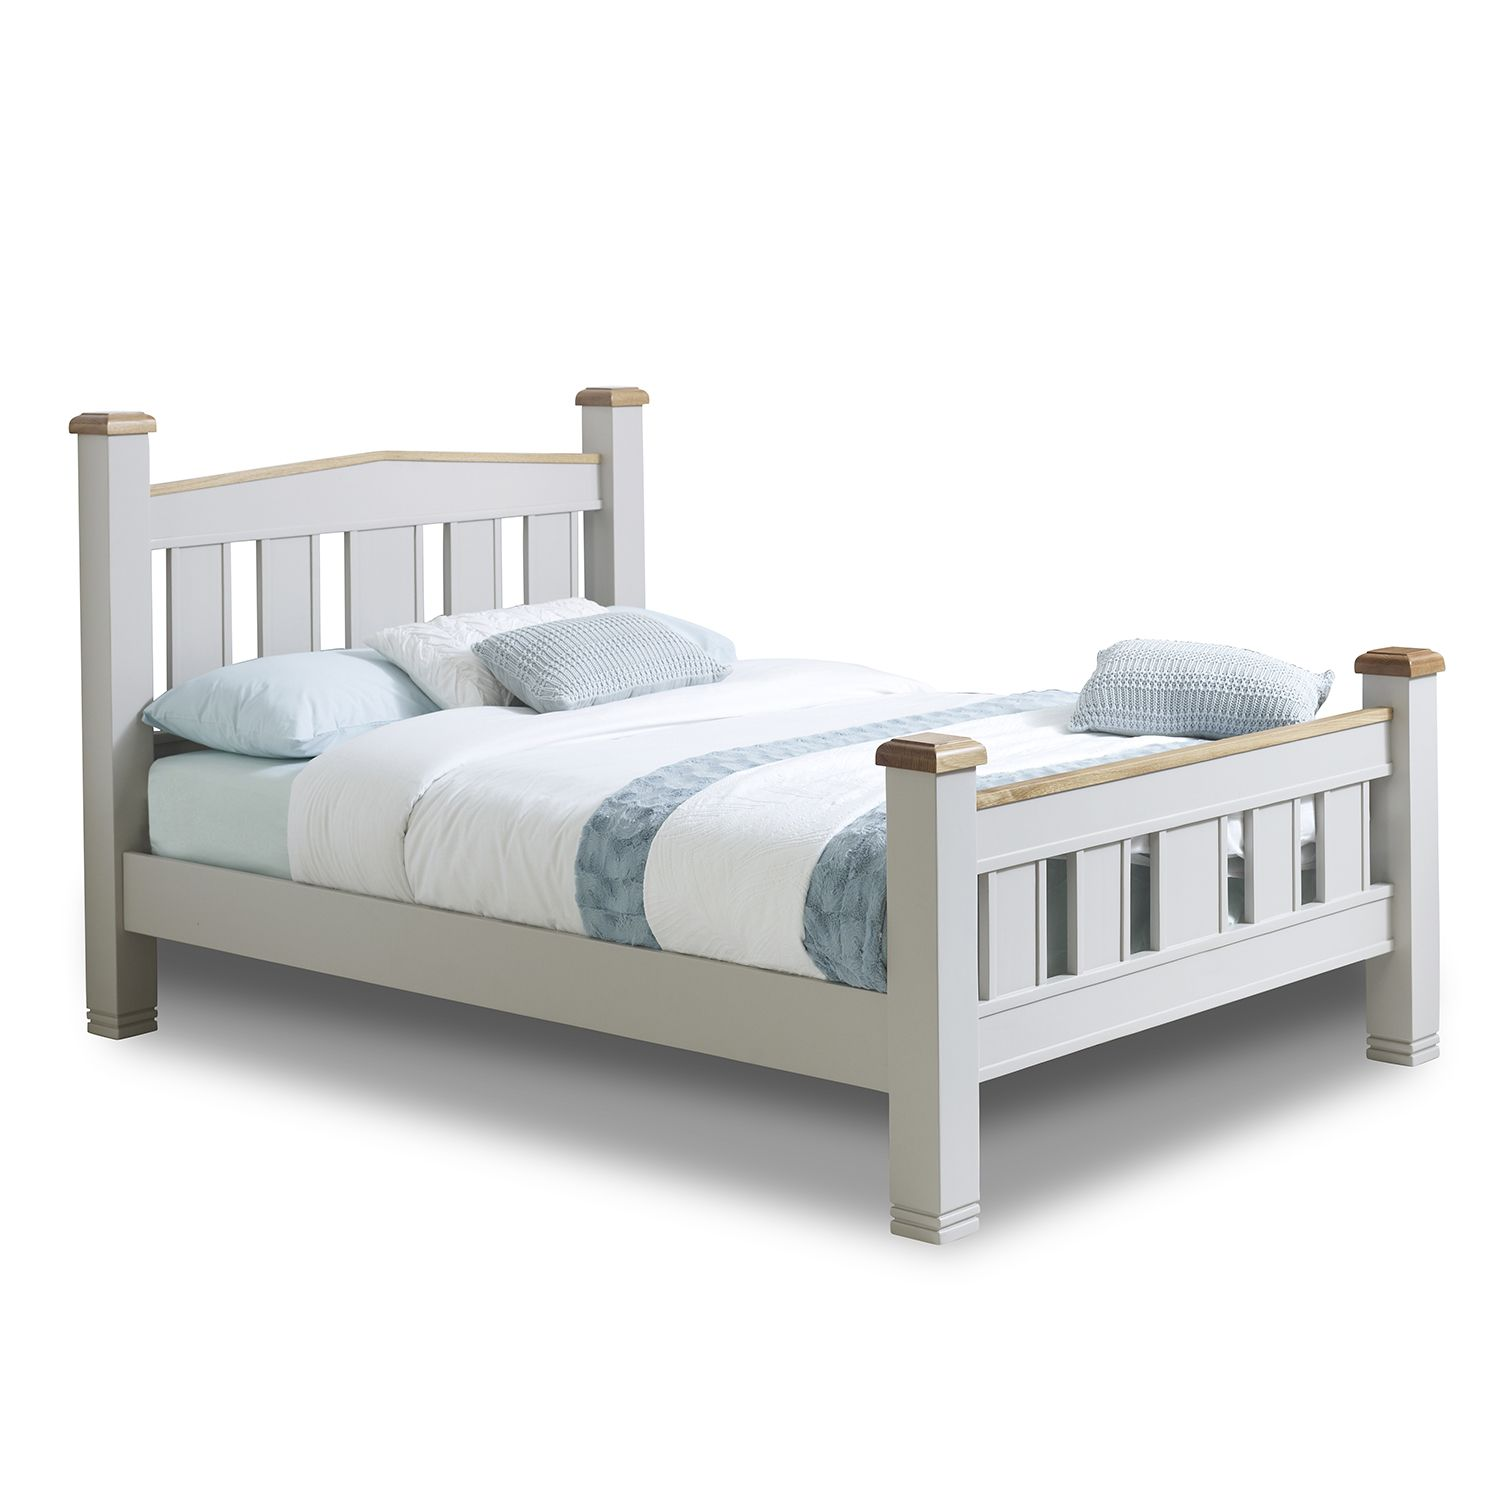 Woodstock Oak Bedframe Next Day Select Day Delivery Bedsteads